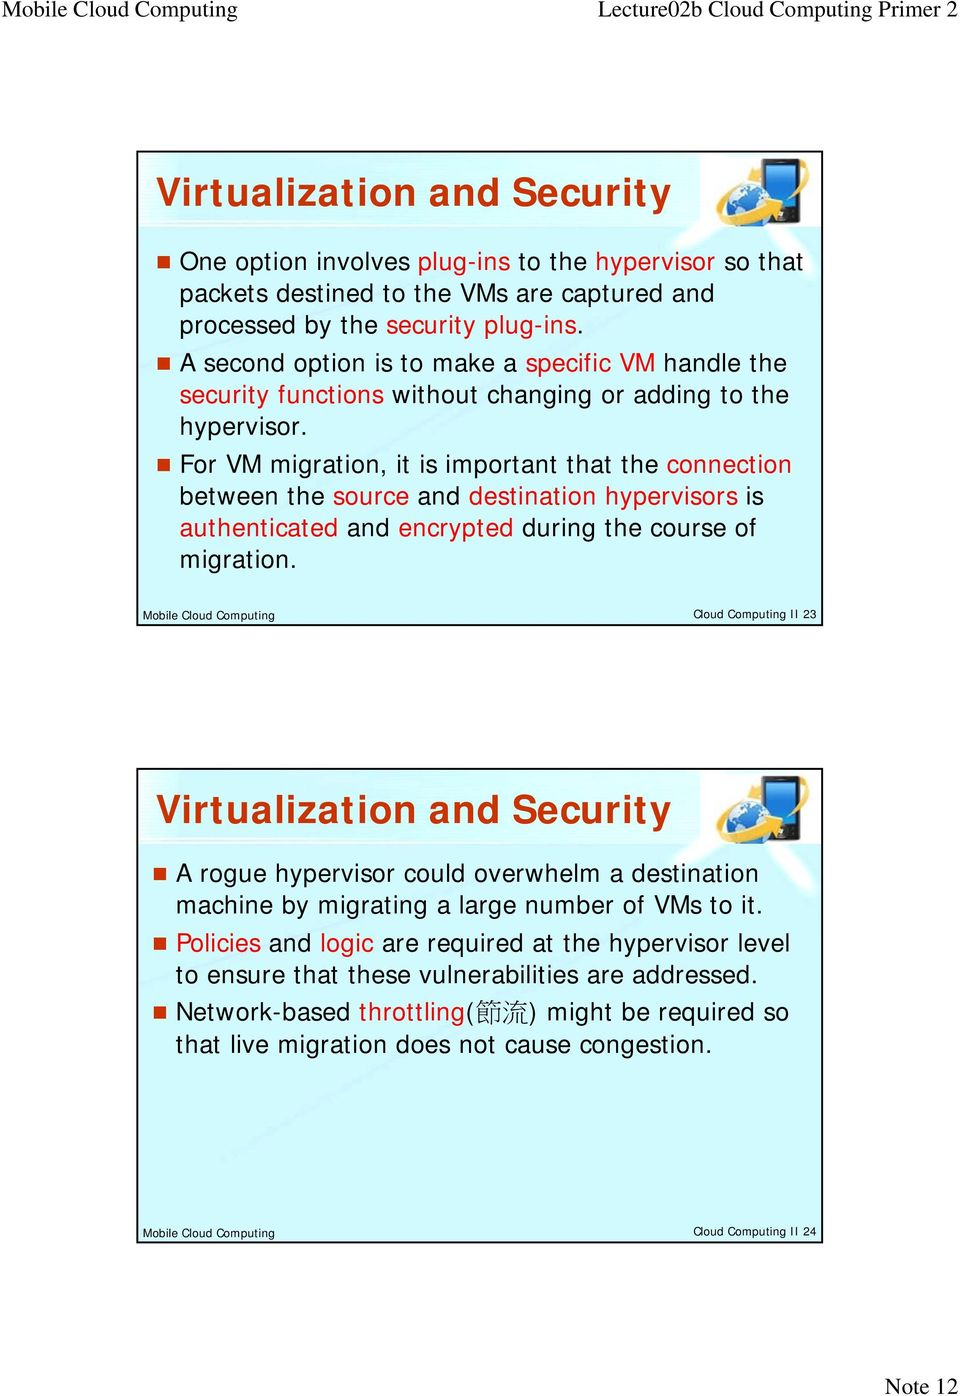 For VM migration, it is important that the connection between the source and destination hypervisors is authenticated and encrypted during the course of migration.